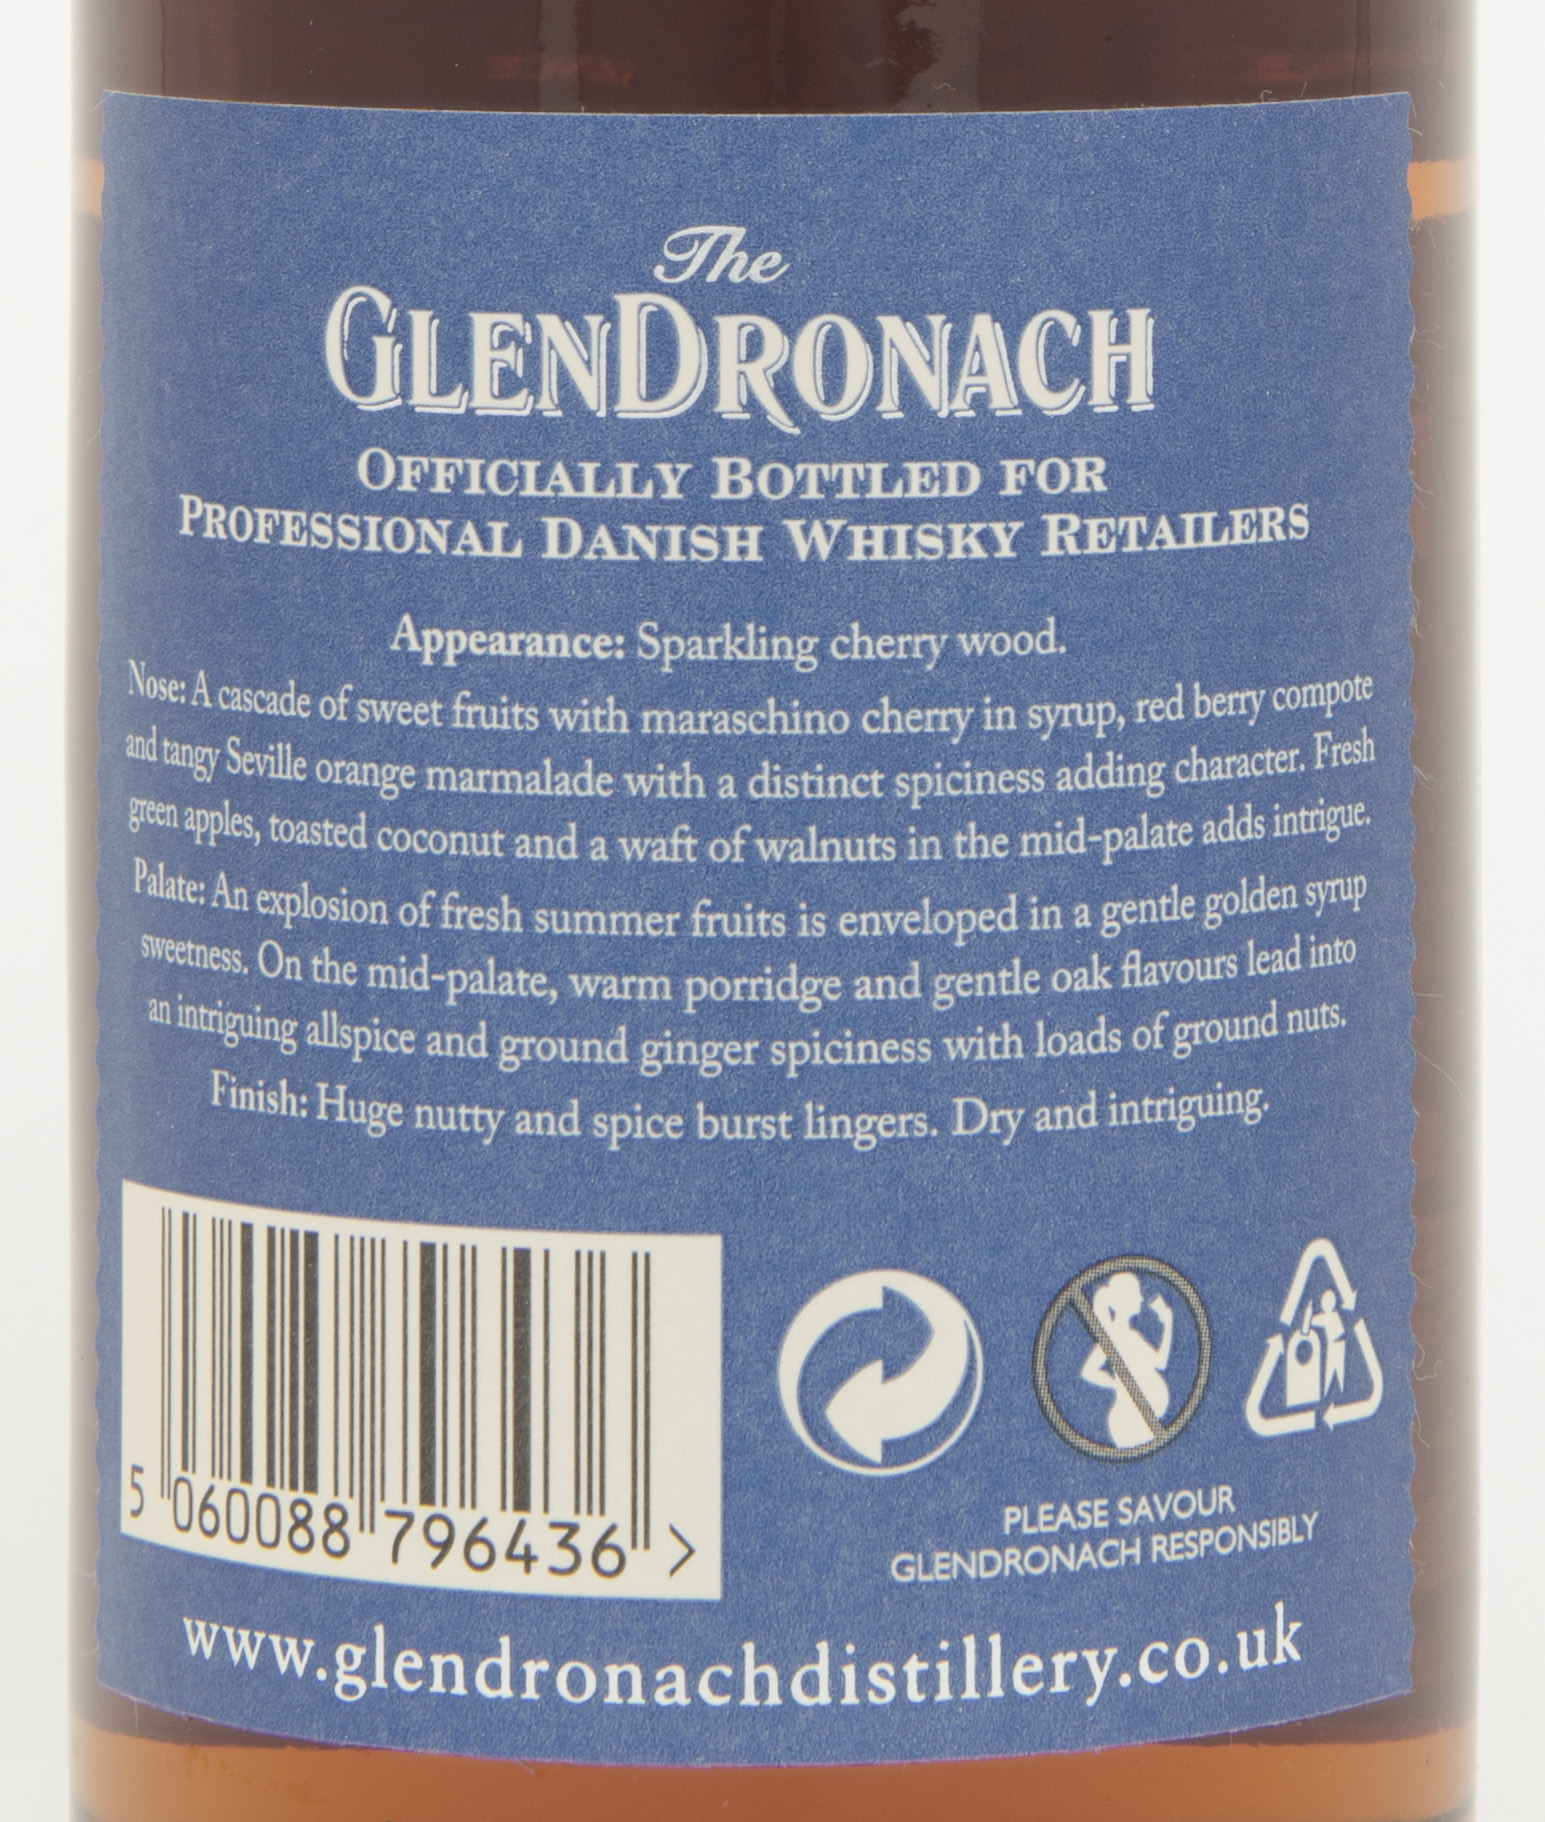 Billede: DSC_4818 - The Glendronach 10 - back label.jpg